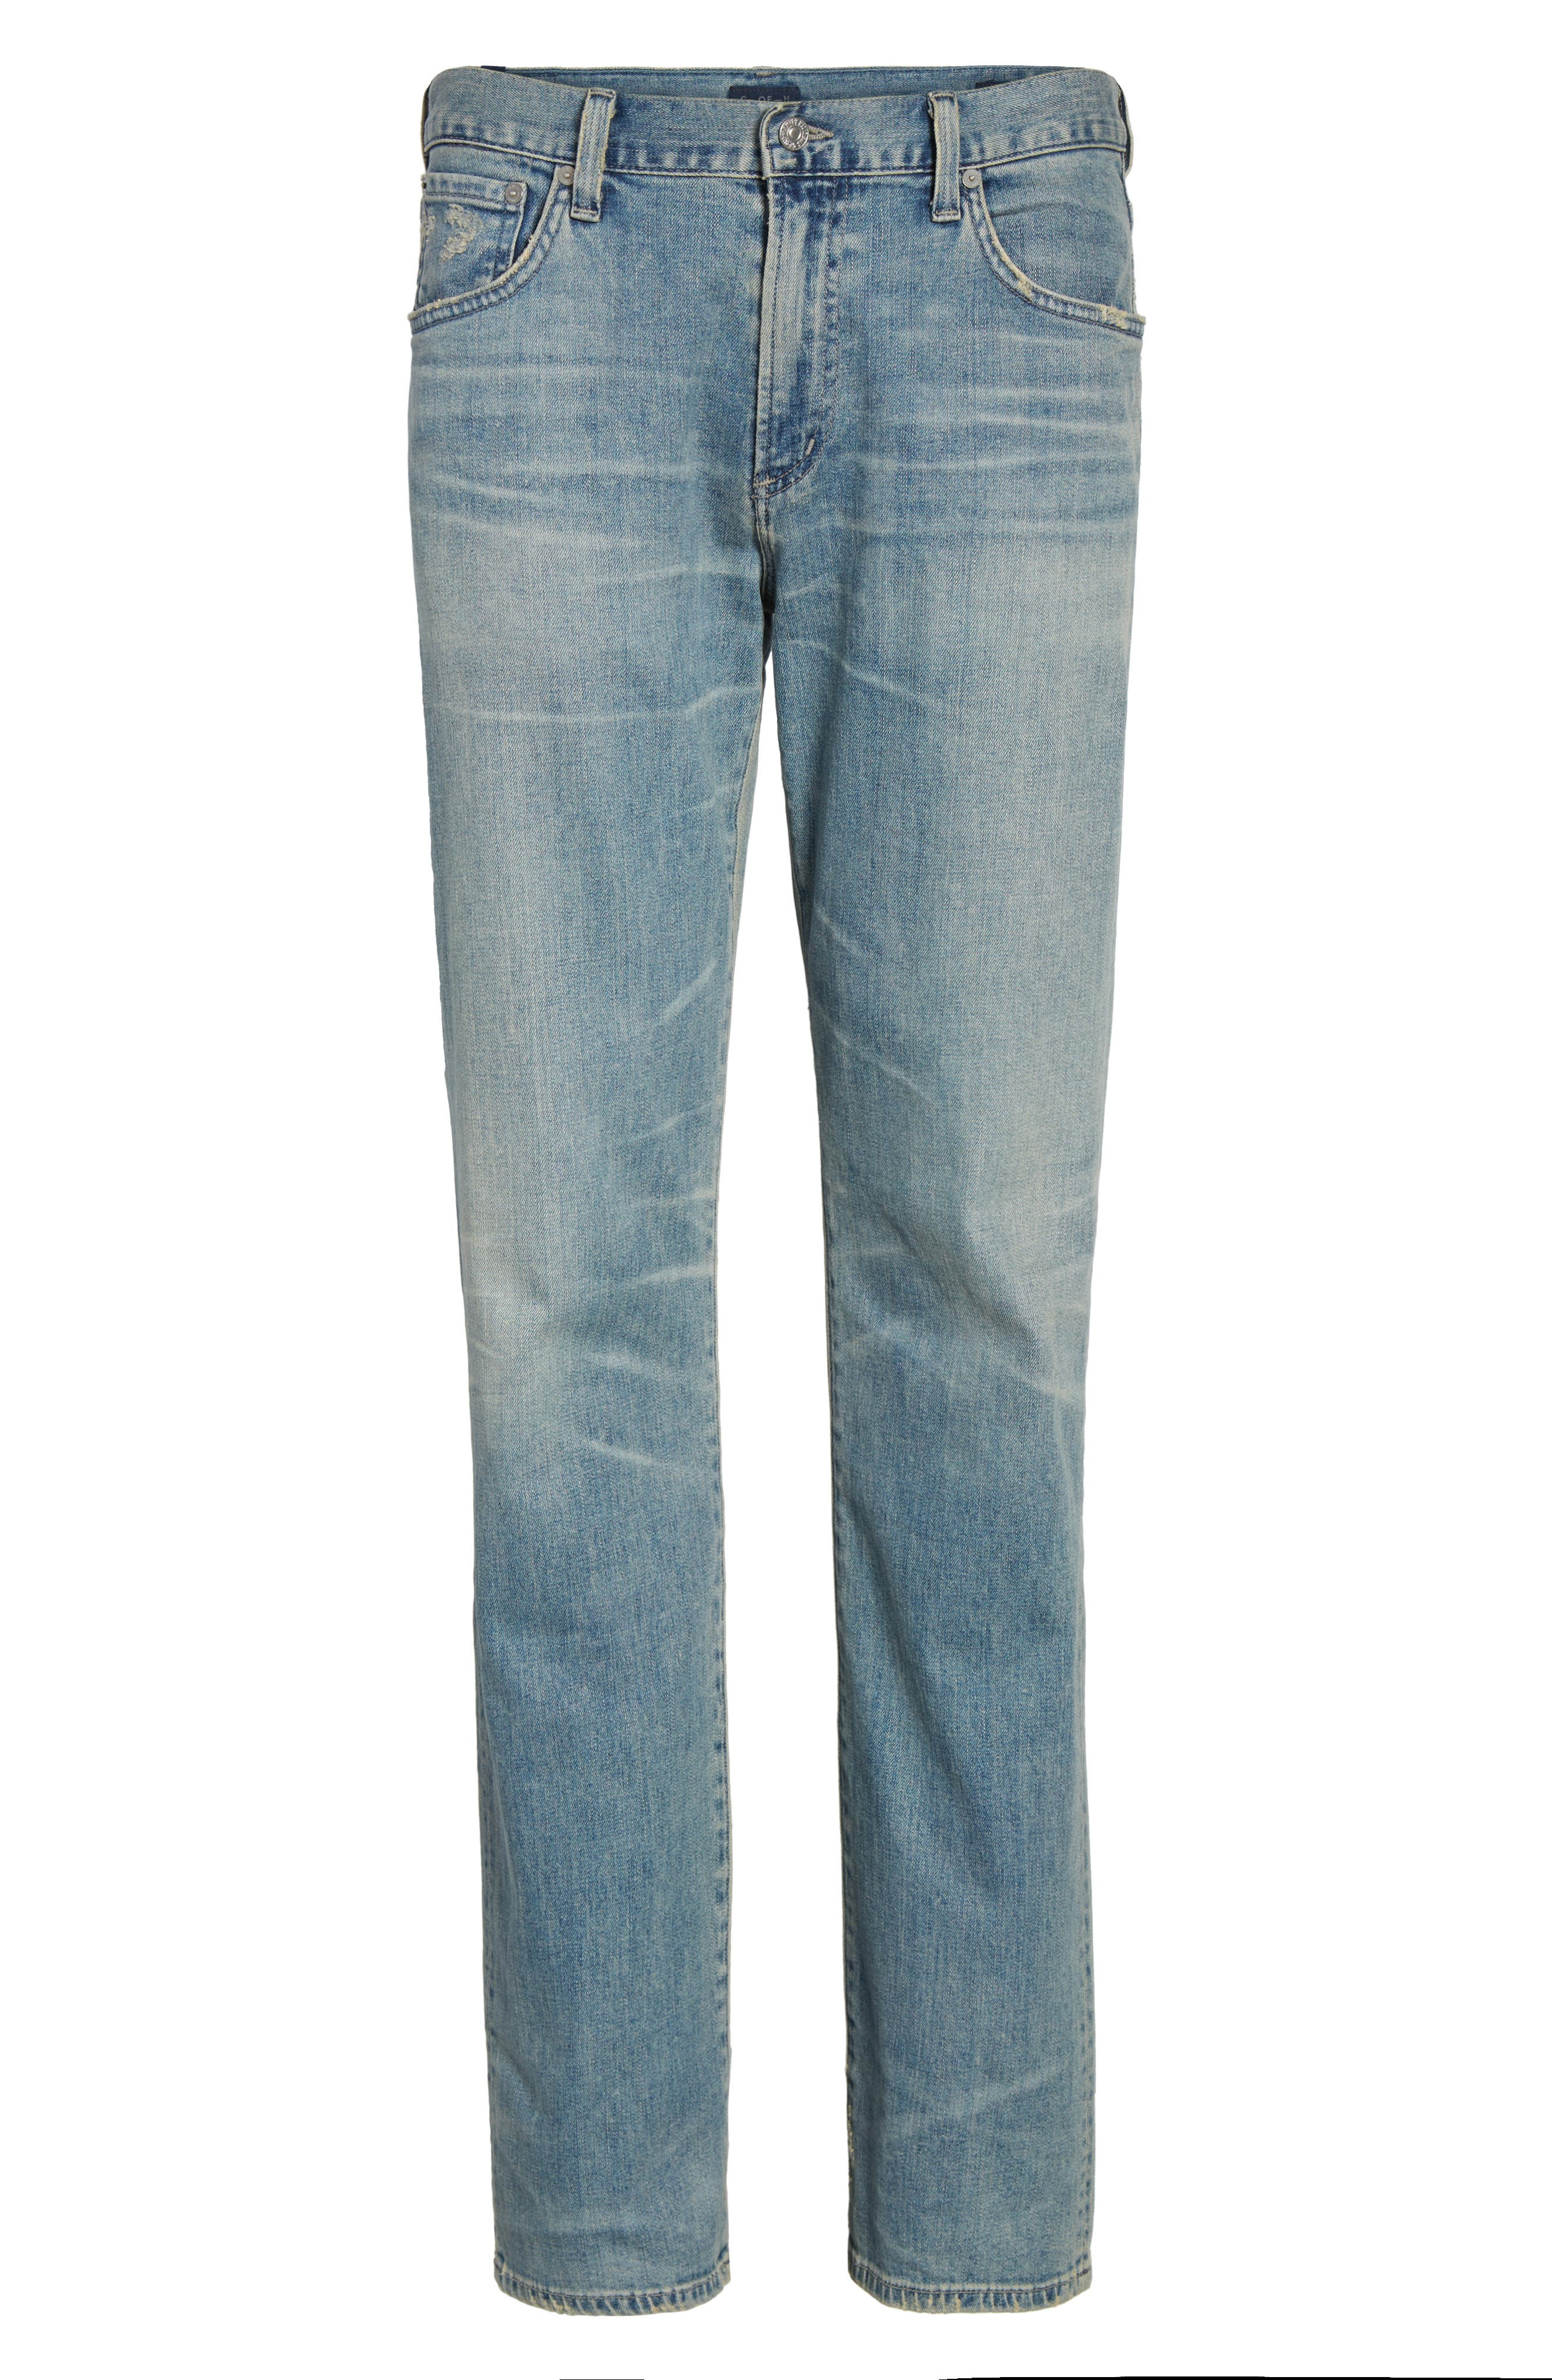 Sid Straight Leg Jeans,                             Alternate thumbnail 6, color,                             ANCHOR